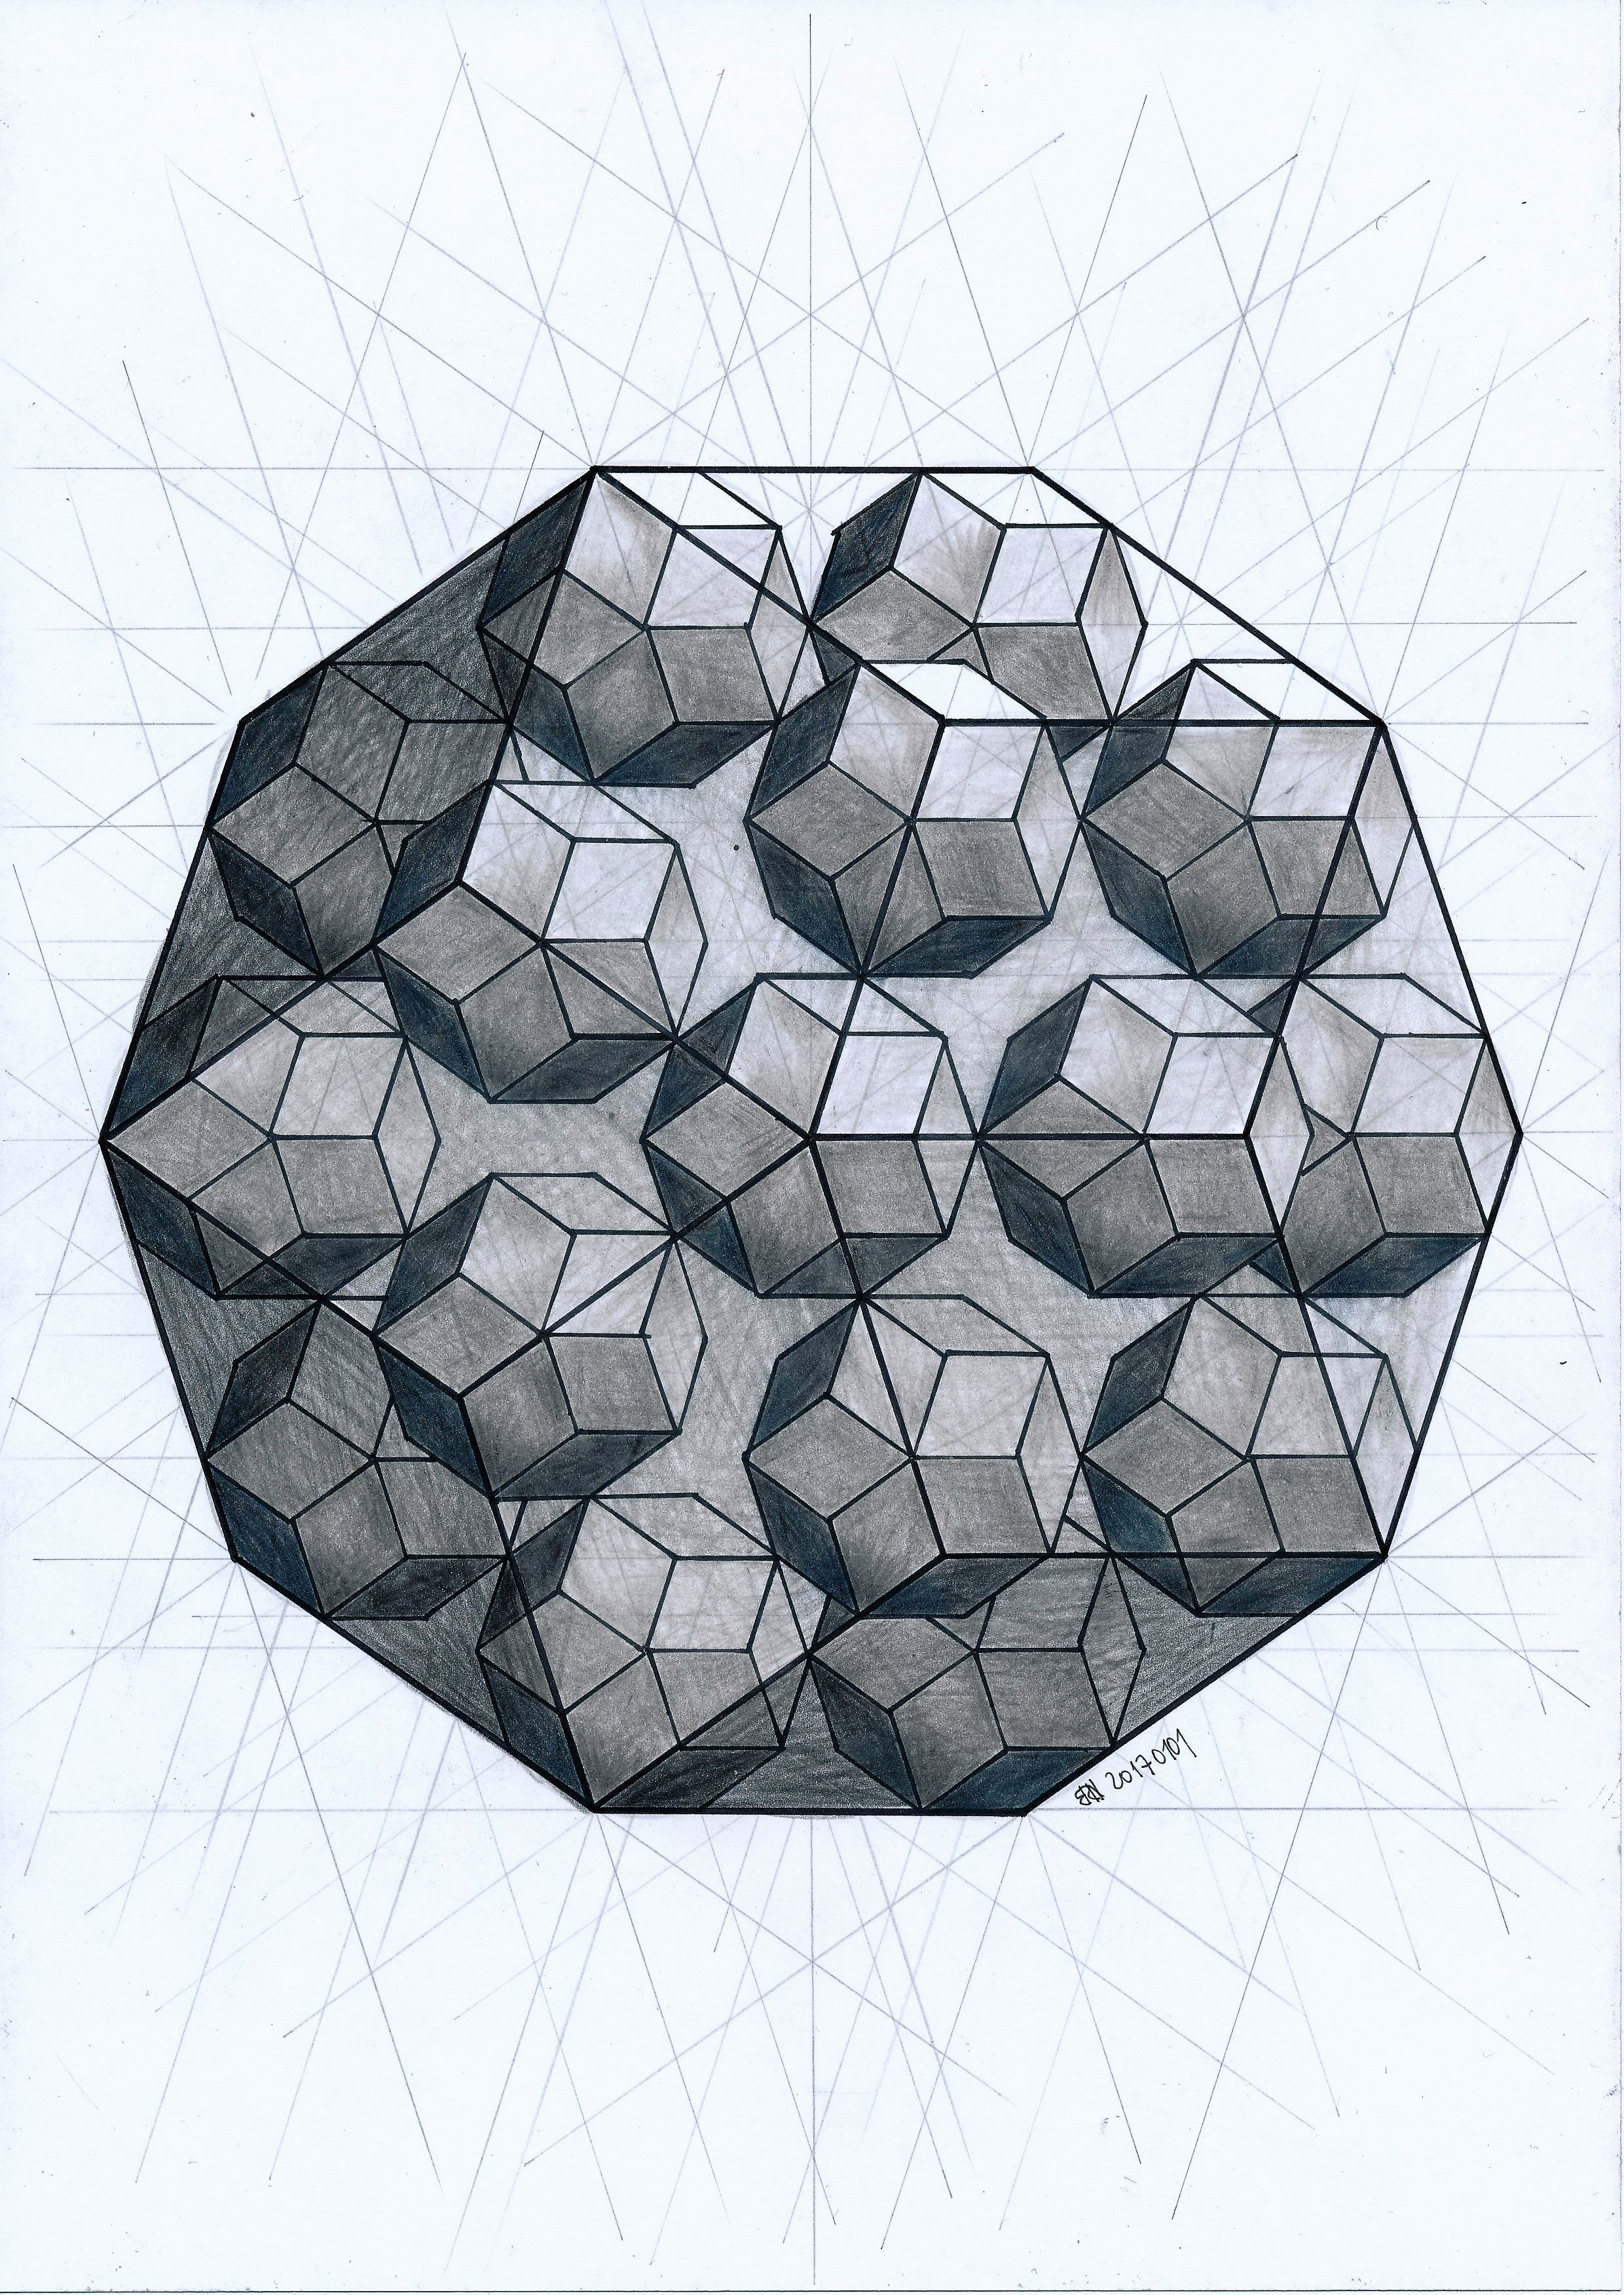 Polyhedron Solid Geometry Symmetry Pentagon Penrose